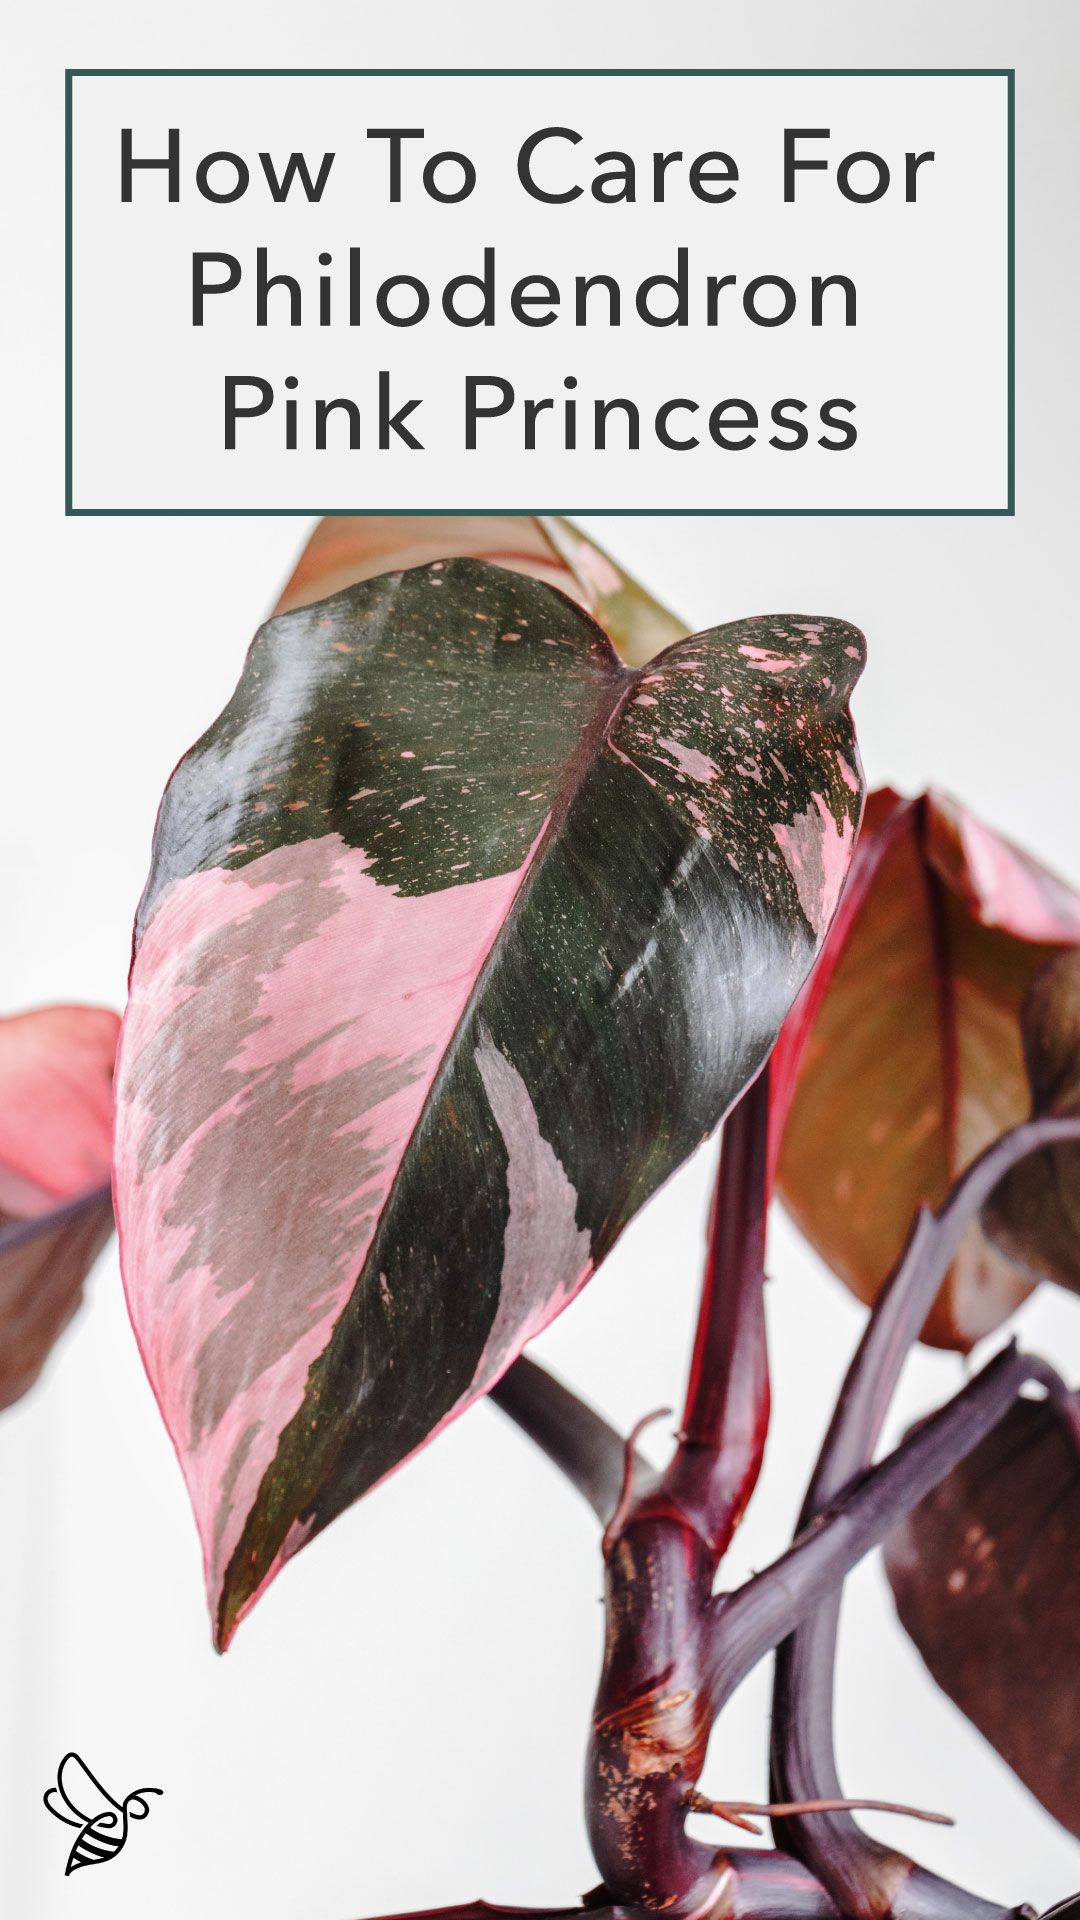 how to care for philodendron pink princess